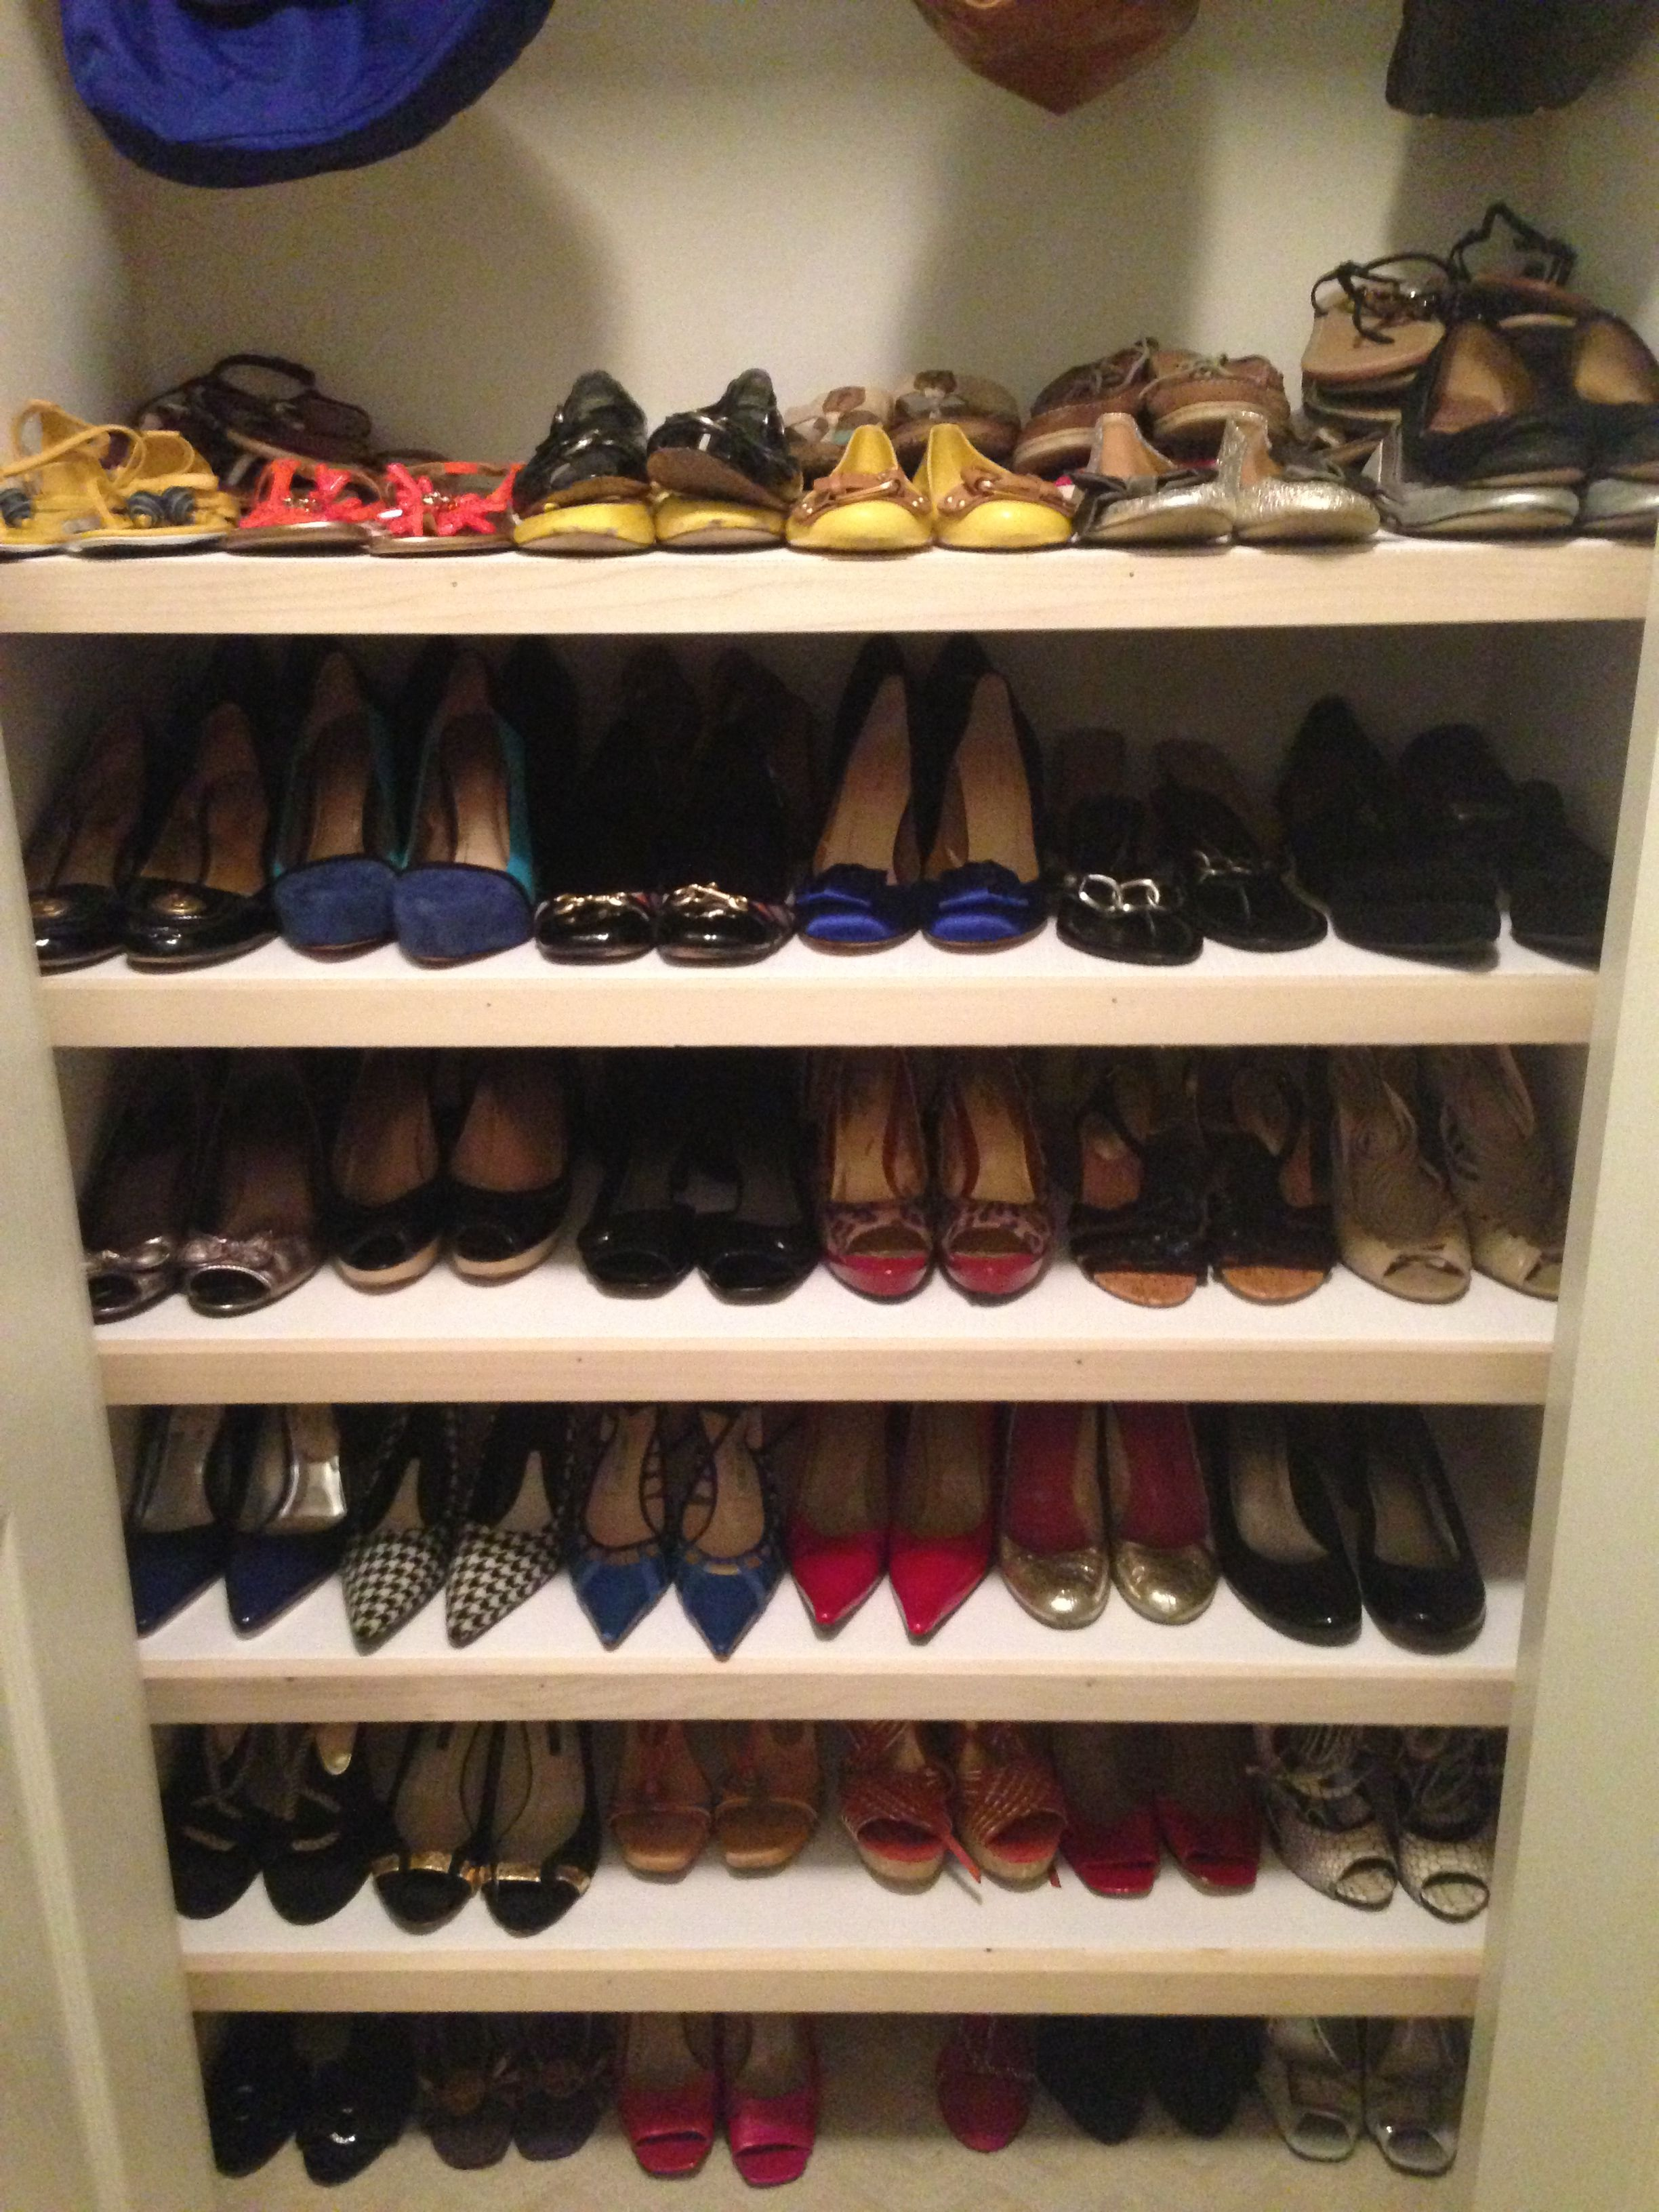 Turn An Extra Bedroom Closet Into An Accessory Closet With Shelves For Shoes And A Raised Bar